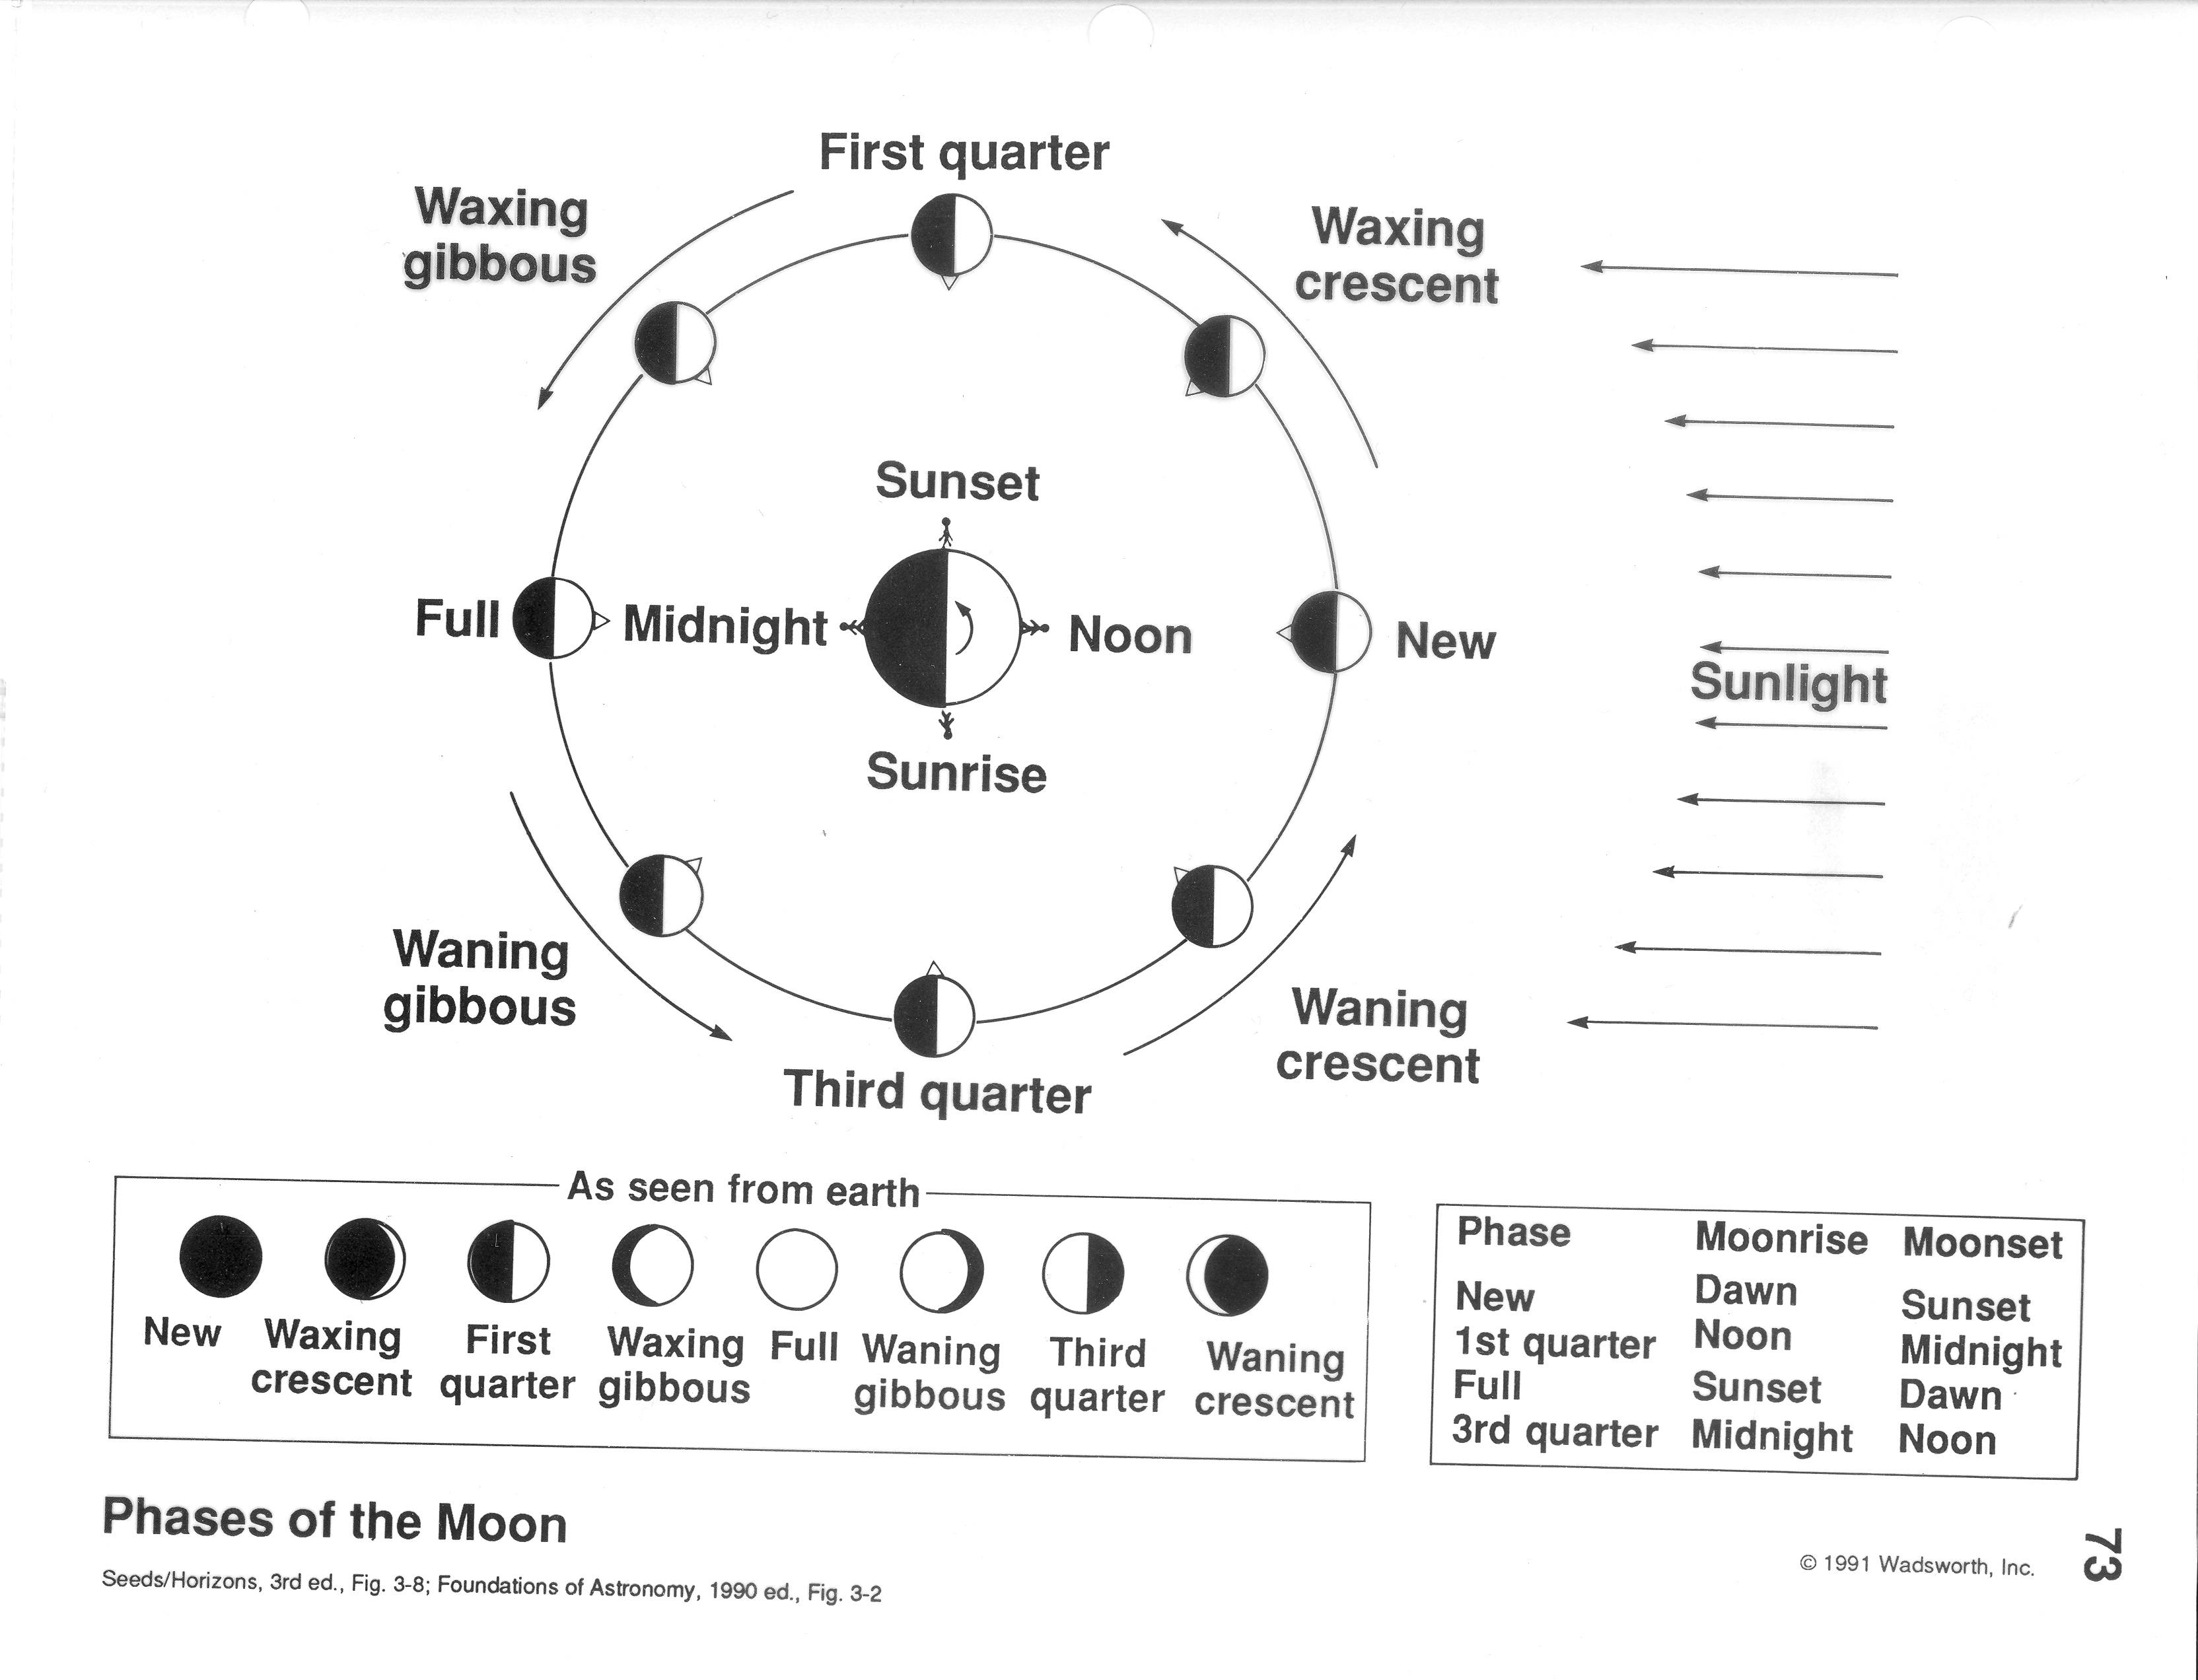 phases of the moon diagram to label 50 amp plug wiring oklahoma space stuff